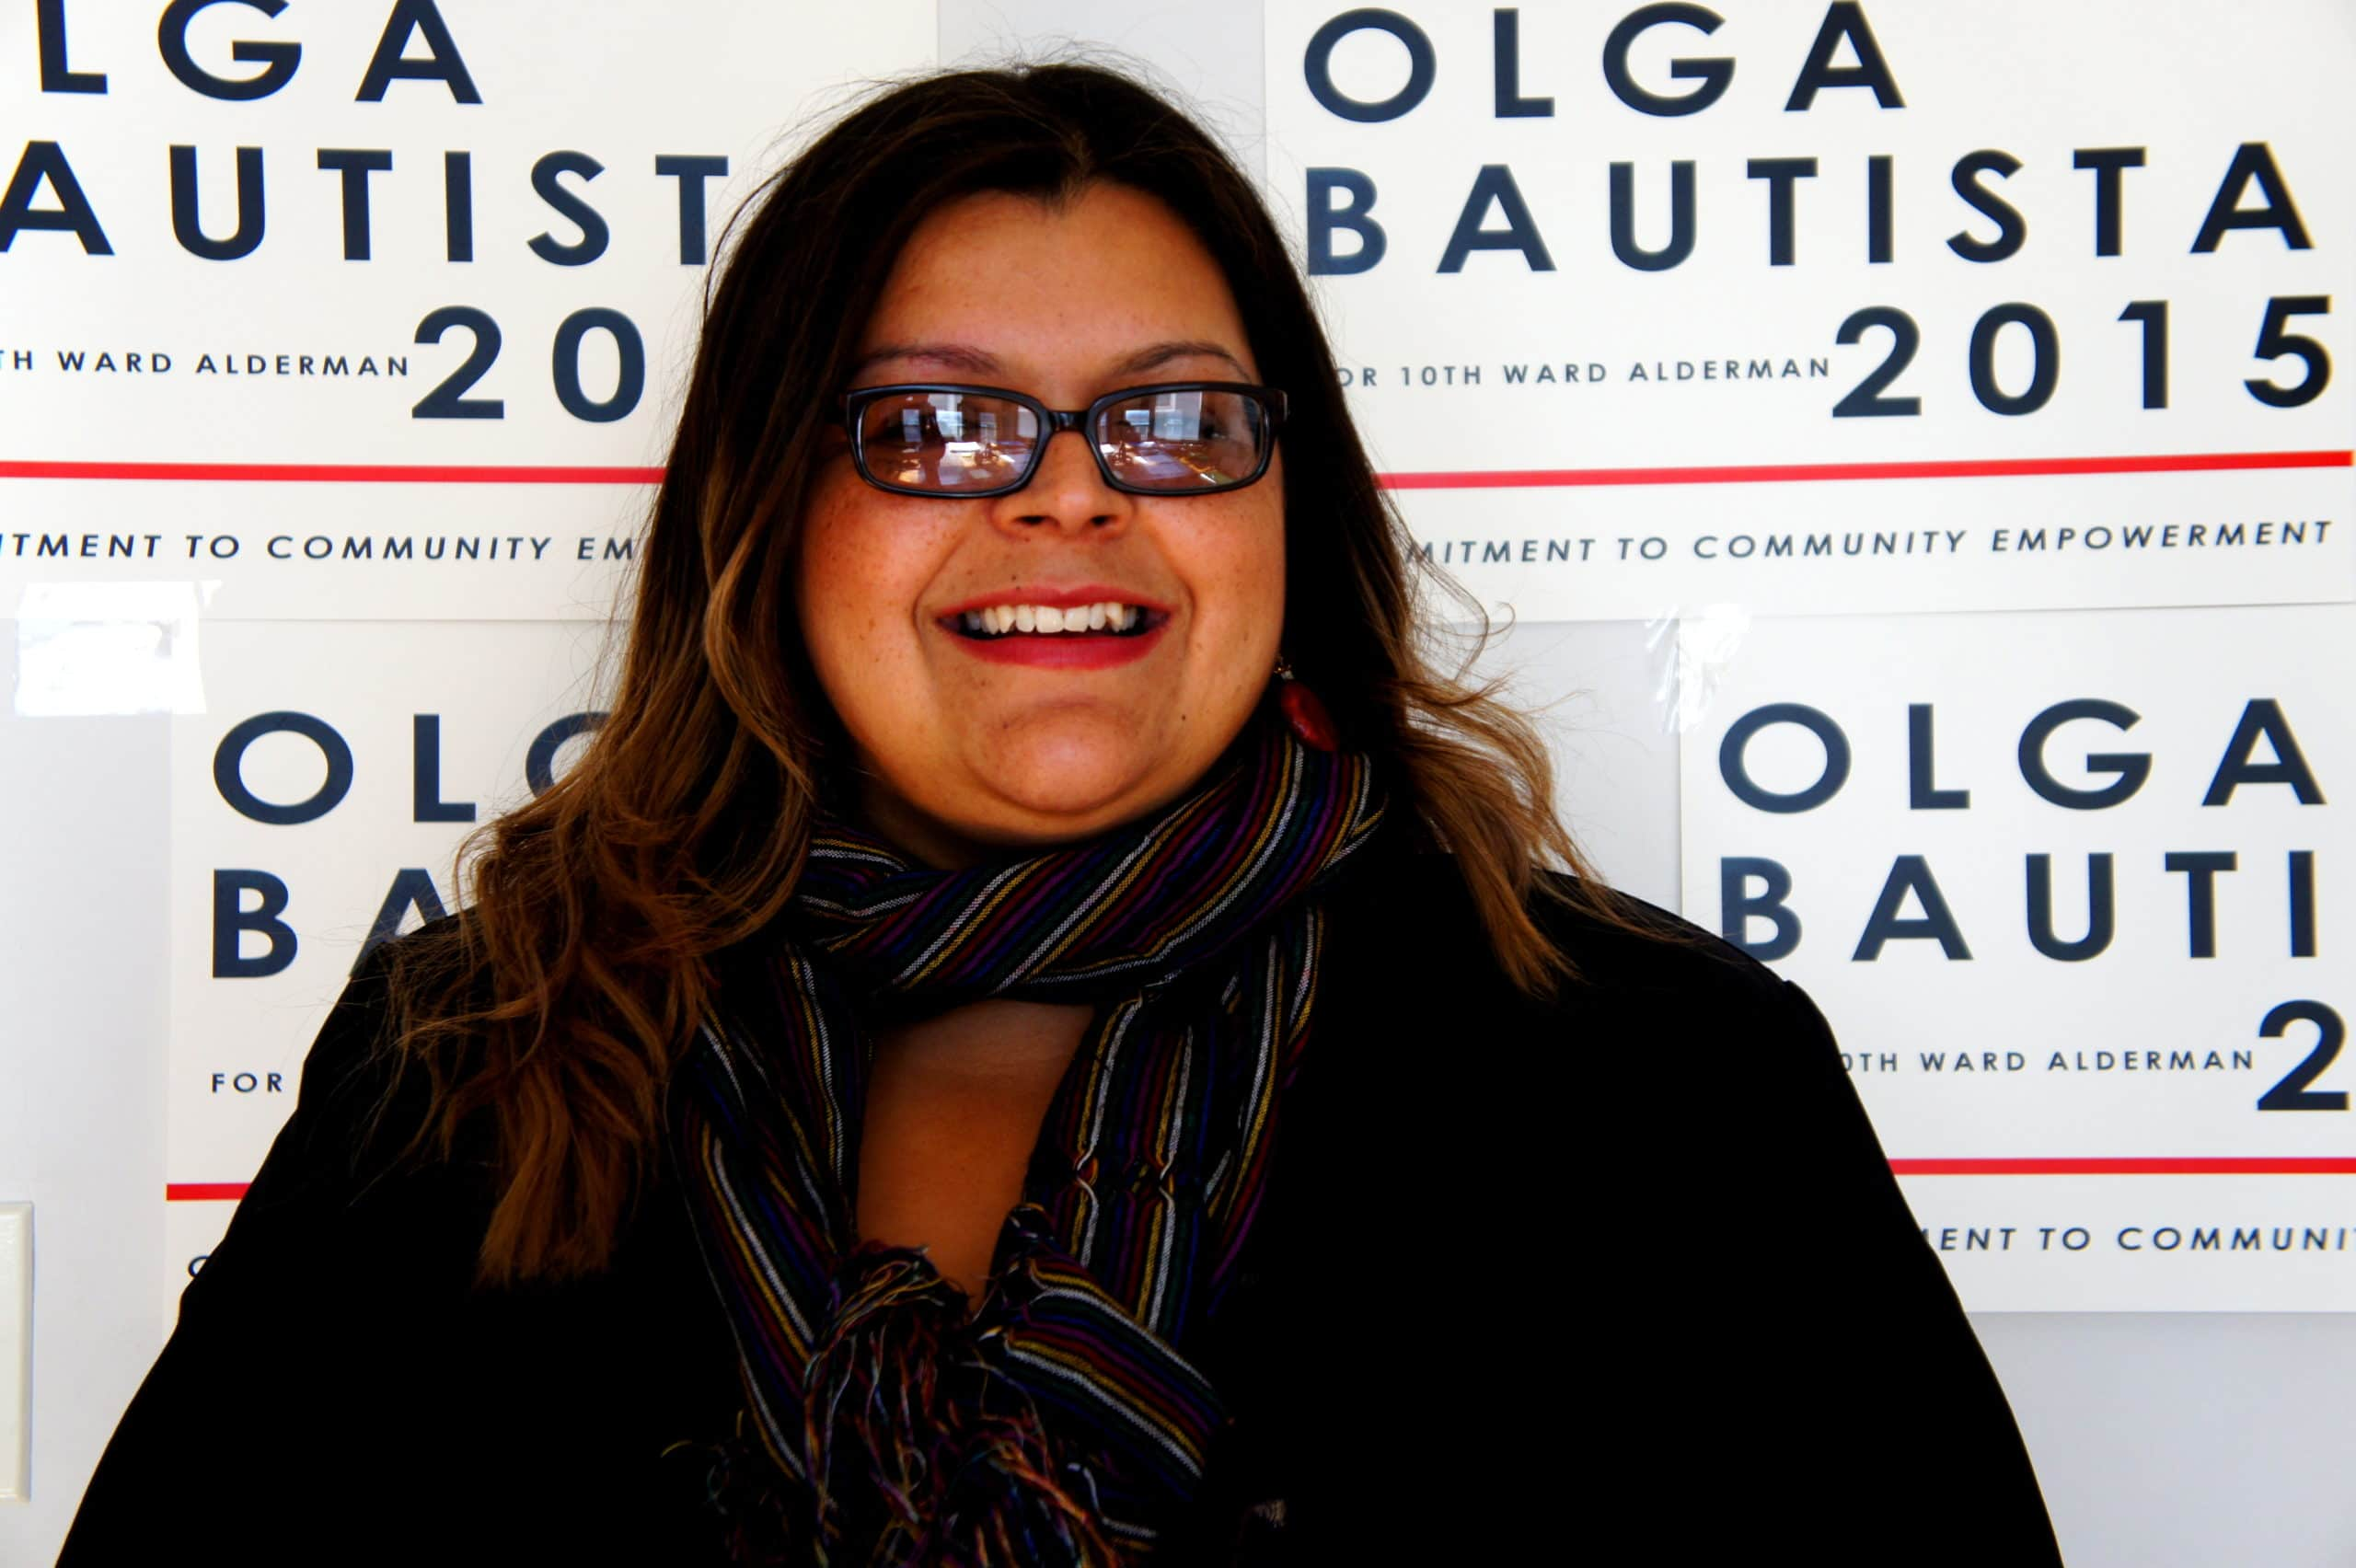 Olga Bautista has lead the fight to ban pet coke storage in Southeast Side, Chicago. Now she's running for 10th Ward Alderman. (Credit Anna Simonton)